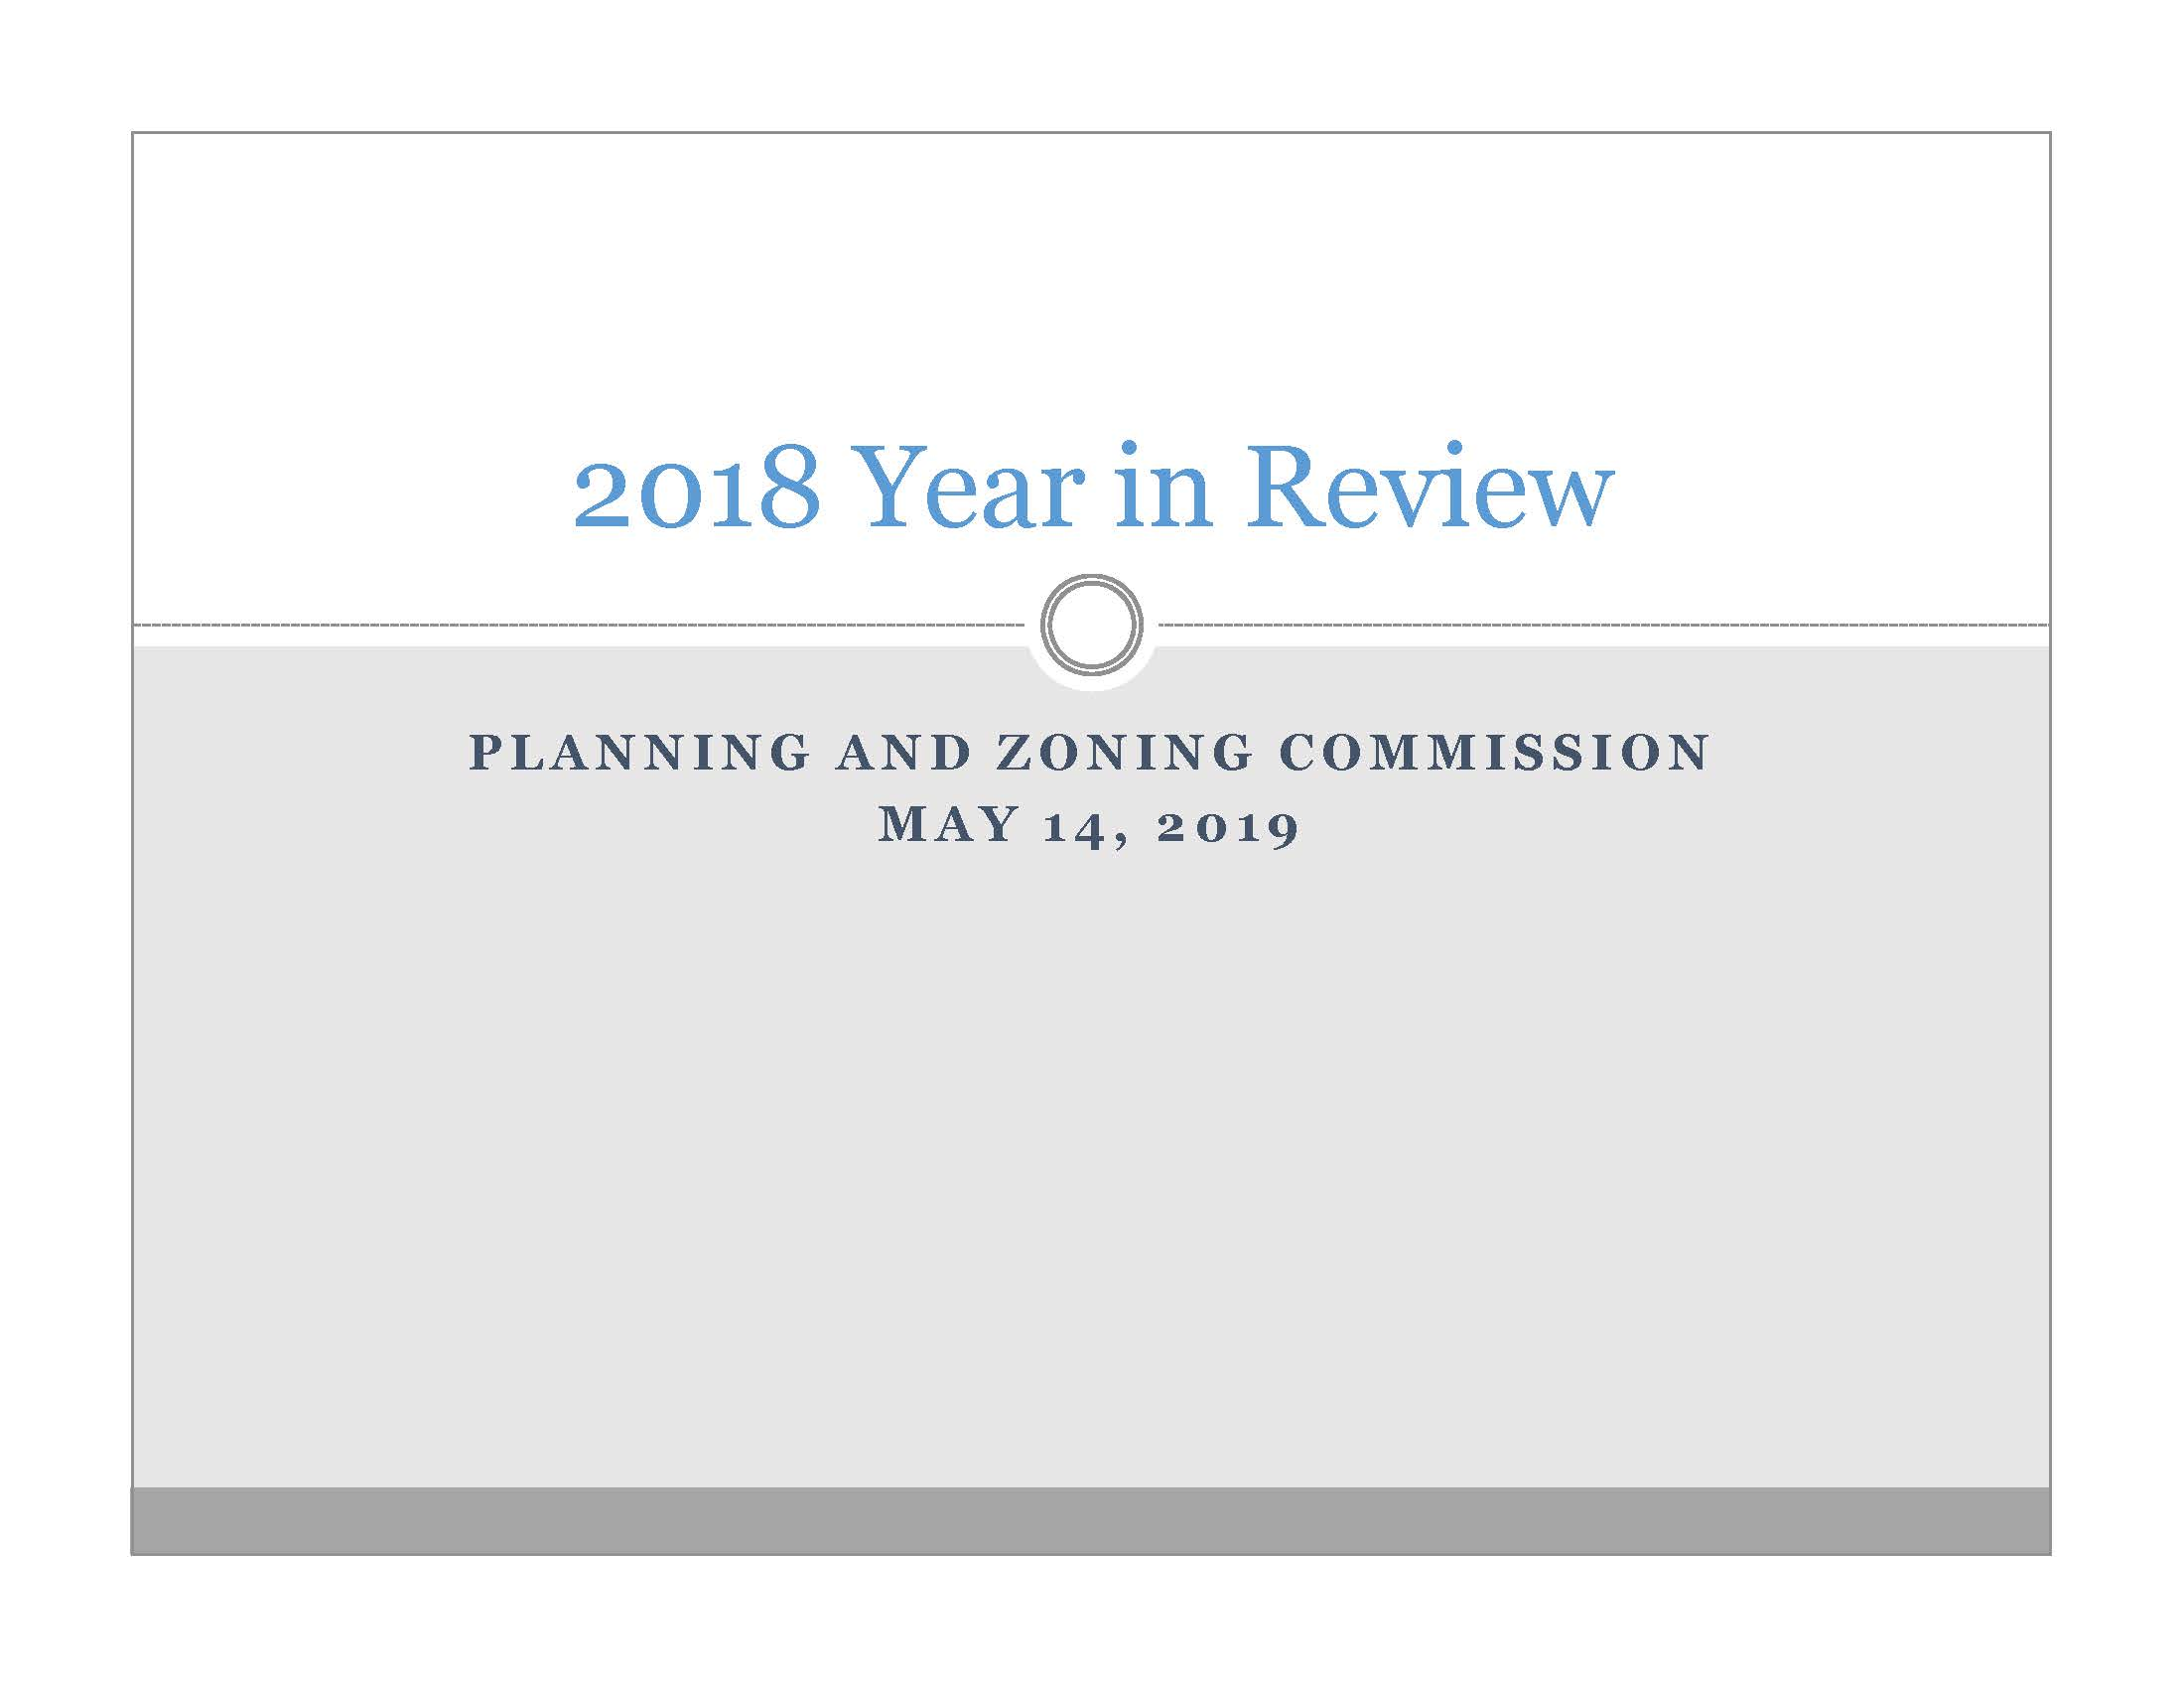 _2018 Annual Report Presentation_Page_01.jpg